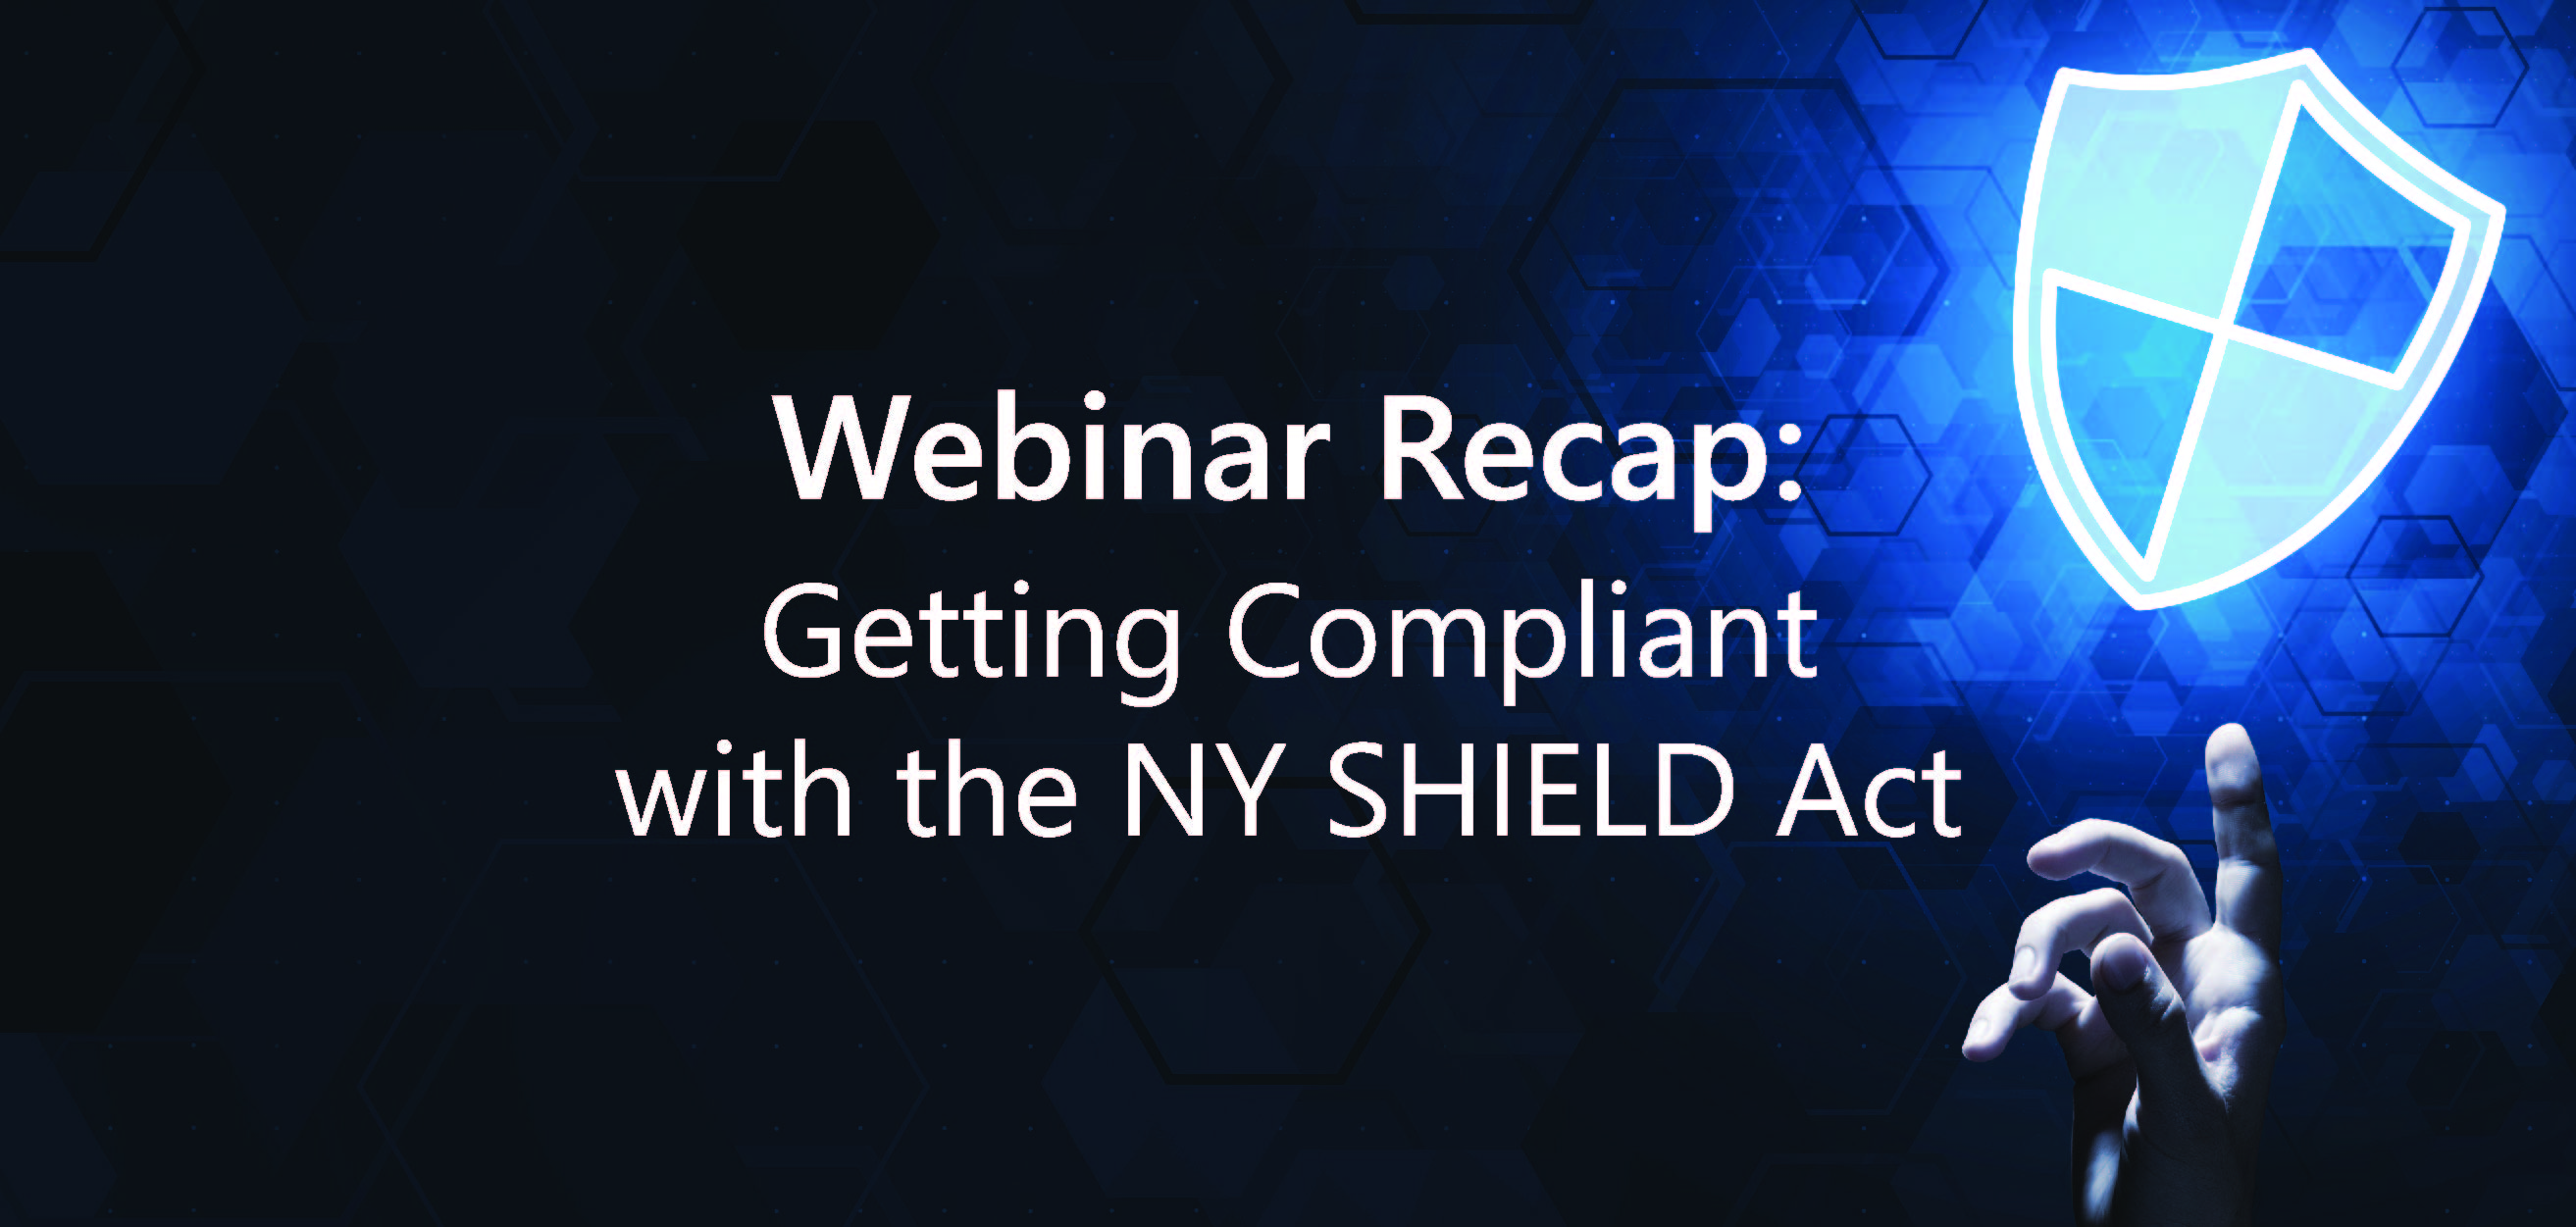 SHIELD Act Webinar